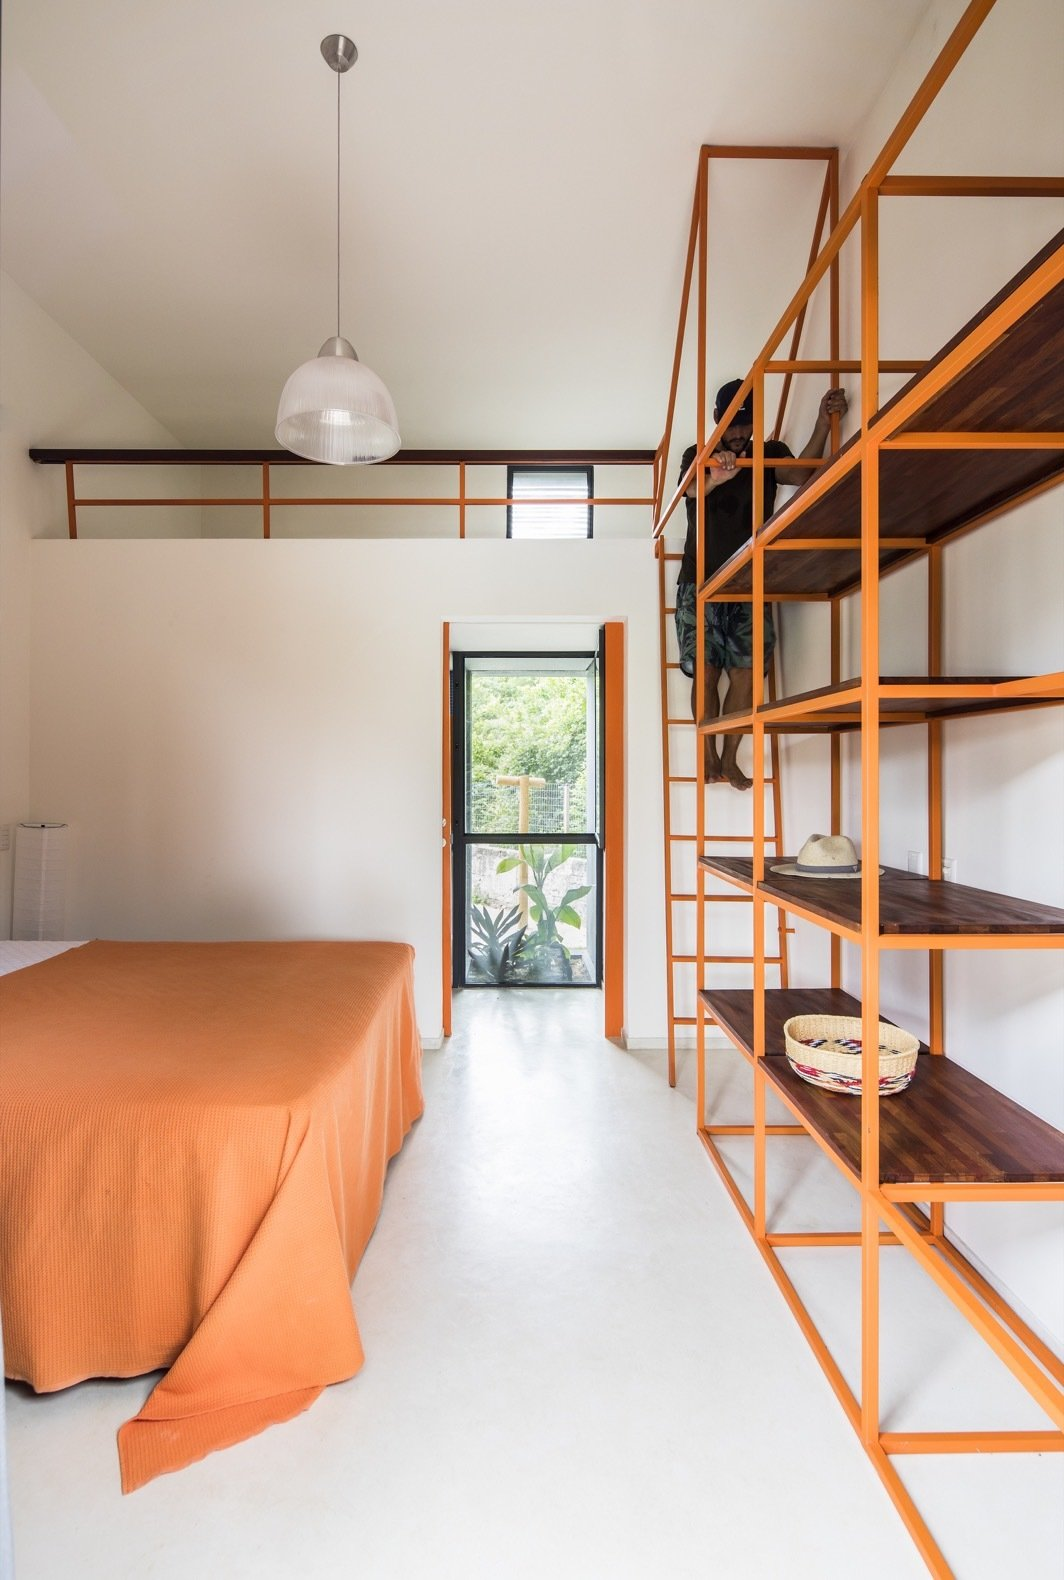 Bedroom, Bed, Concrete Floor, Storage, and Pendant Lighting The Bamboo House features three bedrooms to accommodate the clients' sons when they visit.  Photos from This Budget-Conscious Bamboo House Is a Slice of Paradise